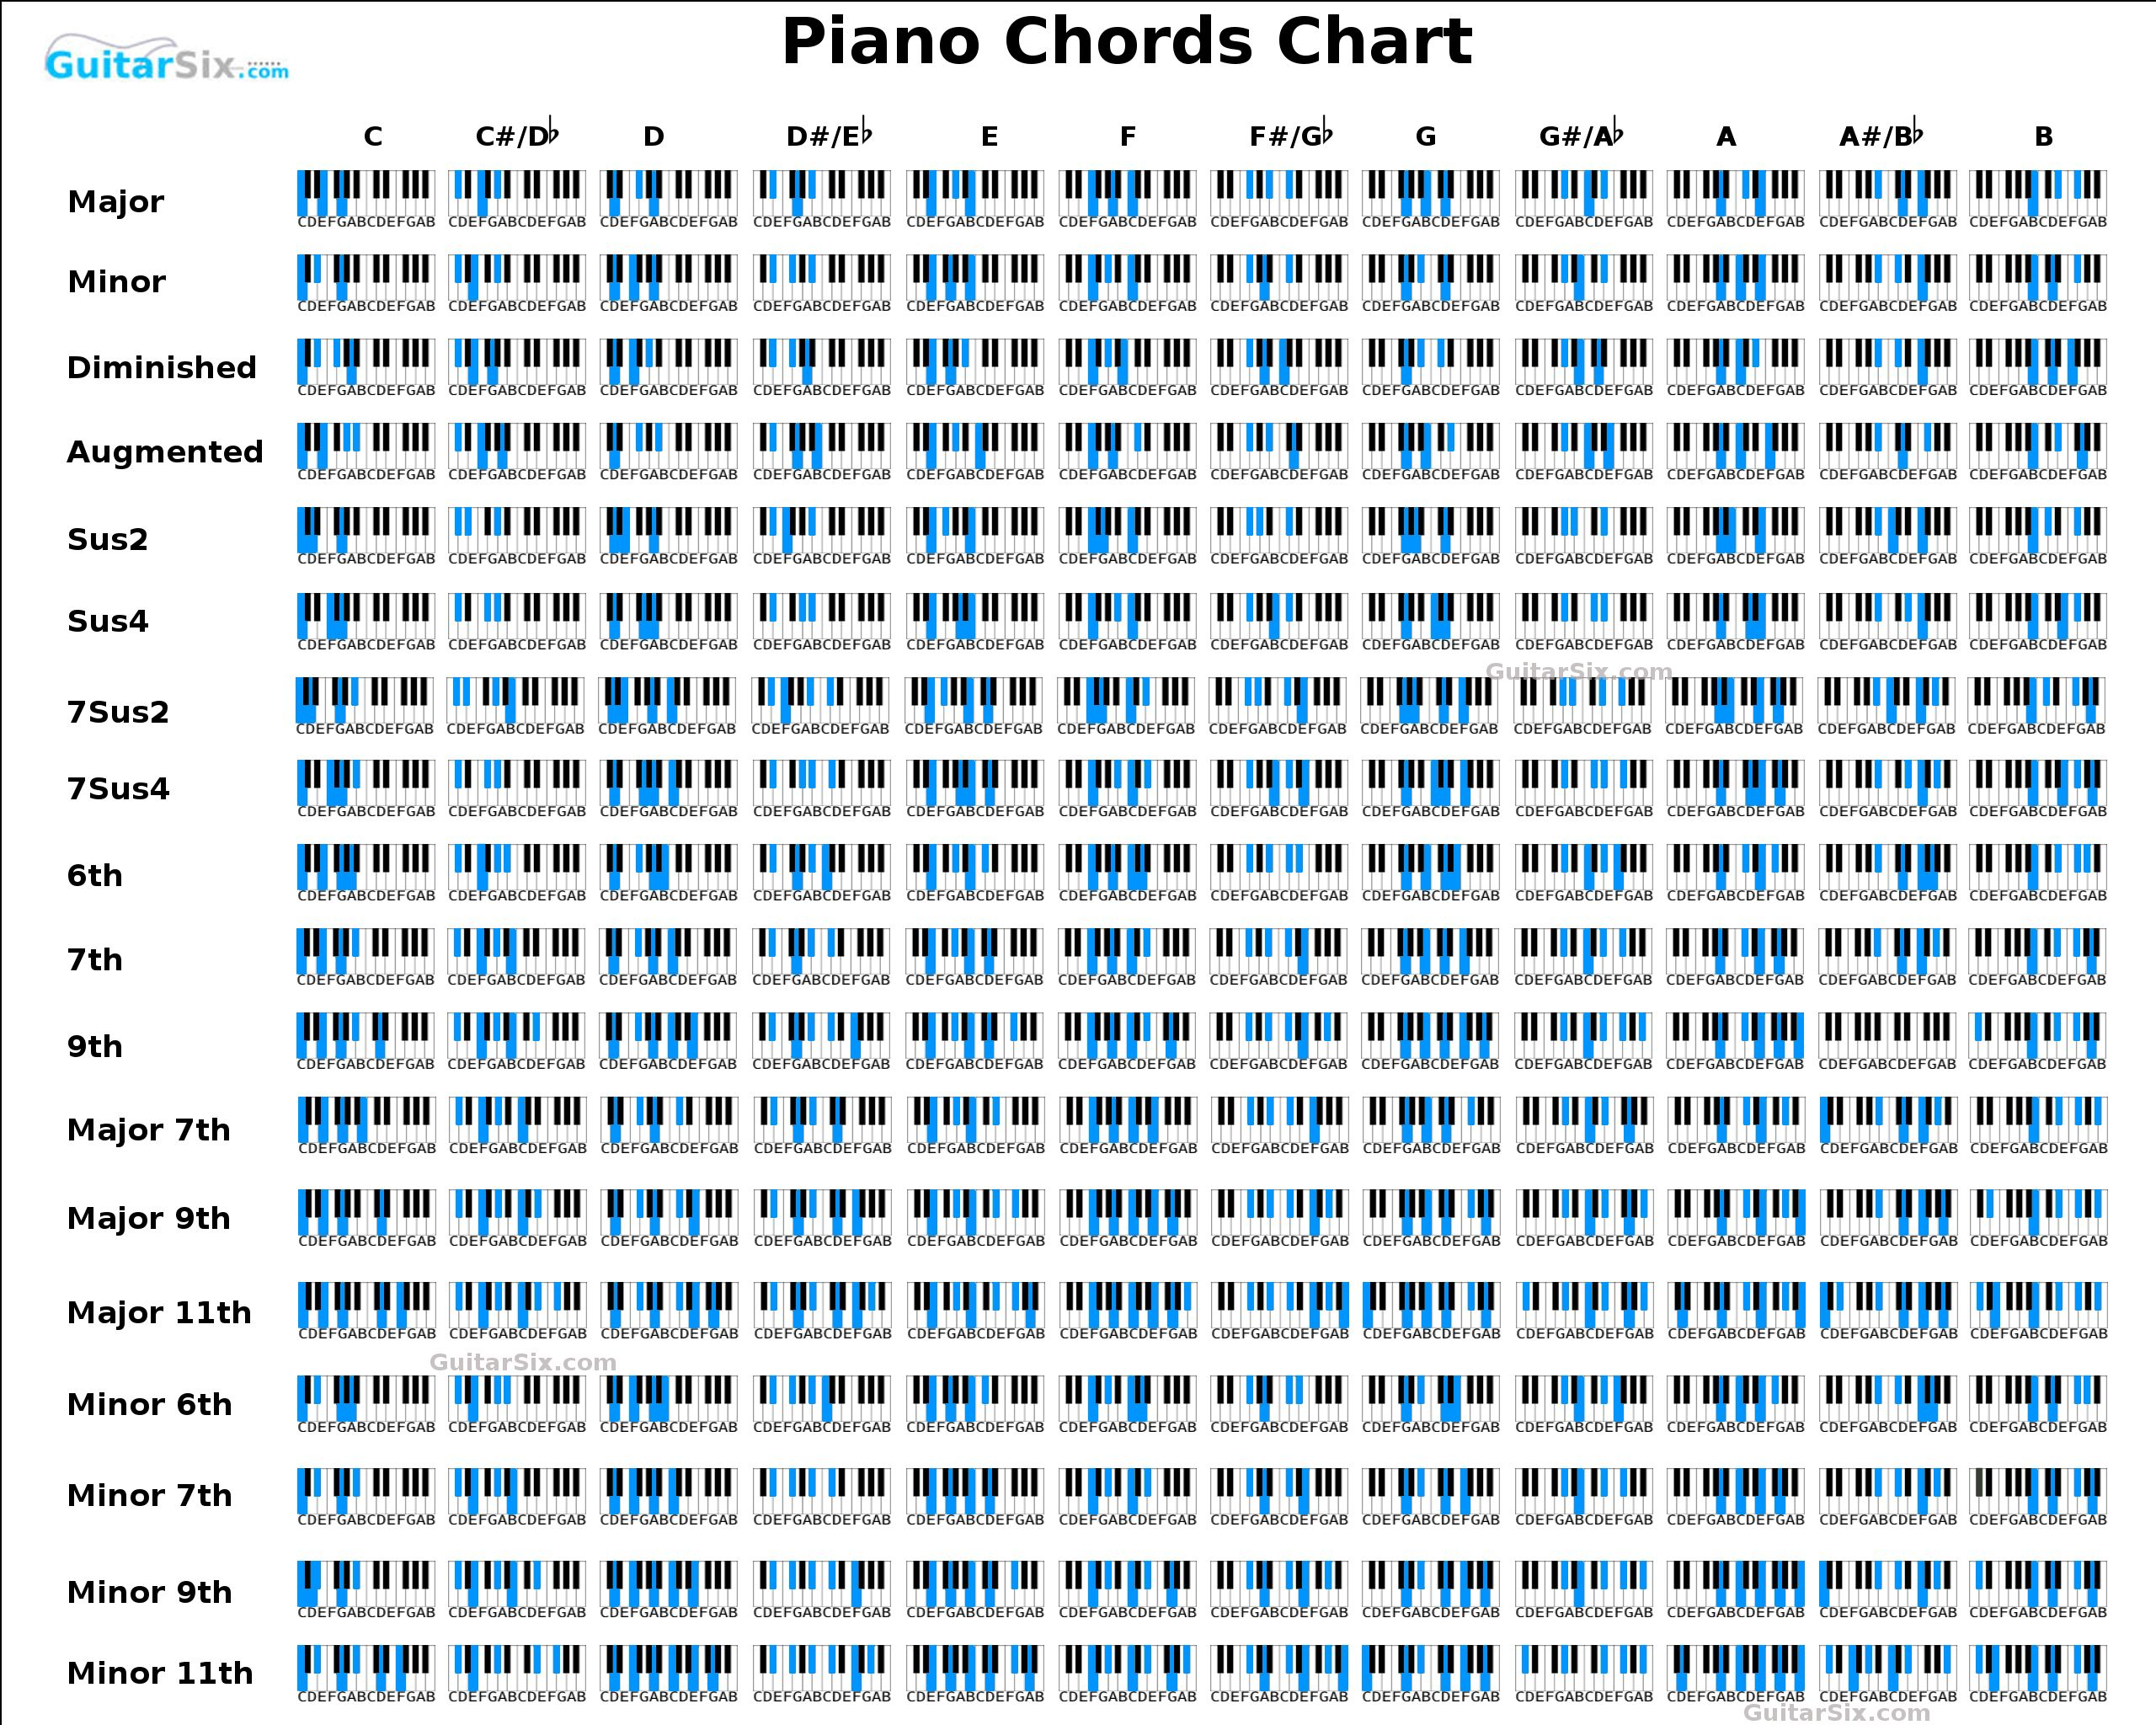 Httpguitarsixdownloadspiano chord chartg piano piano chords 28 images piano chords piano notes piano chord chart catskill start guitar and piano chords taralets free piano chord chart kullee hexwebz Image collections